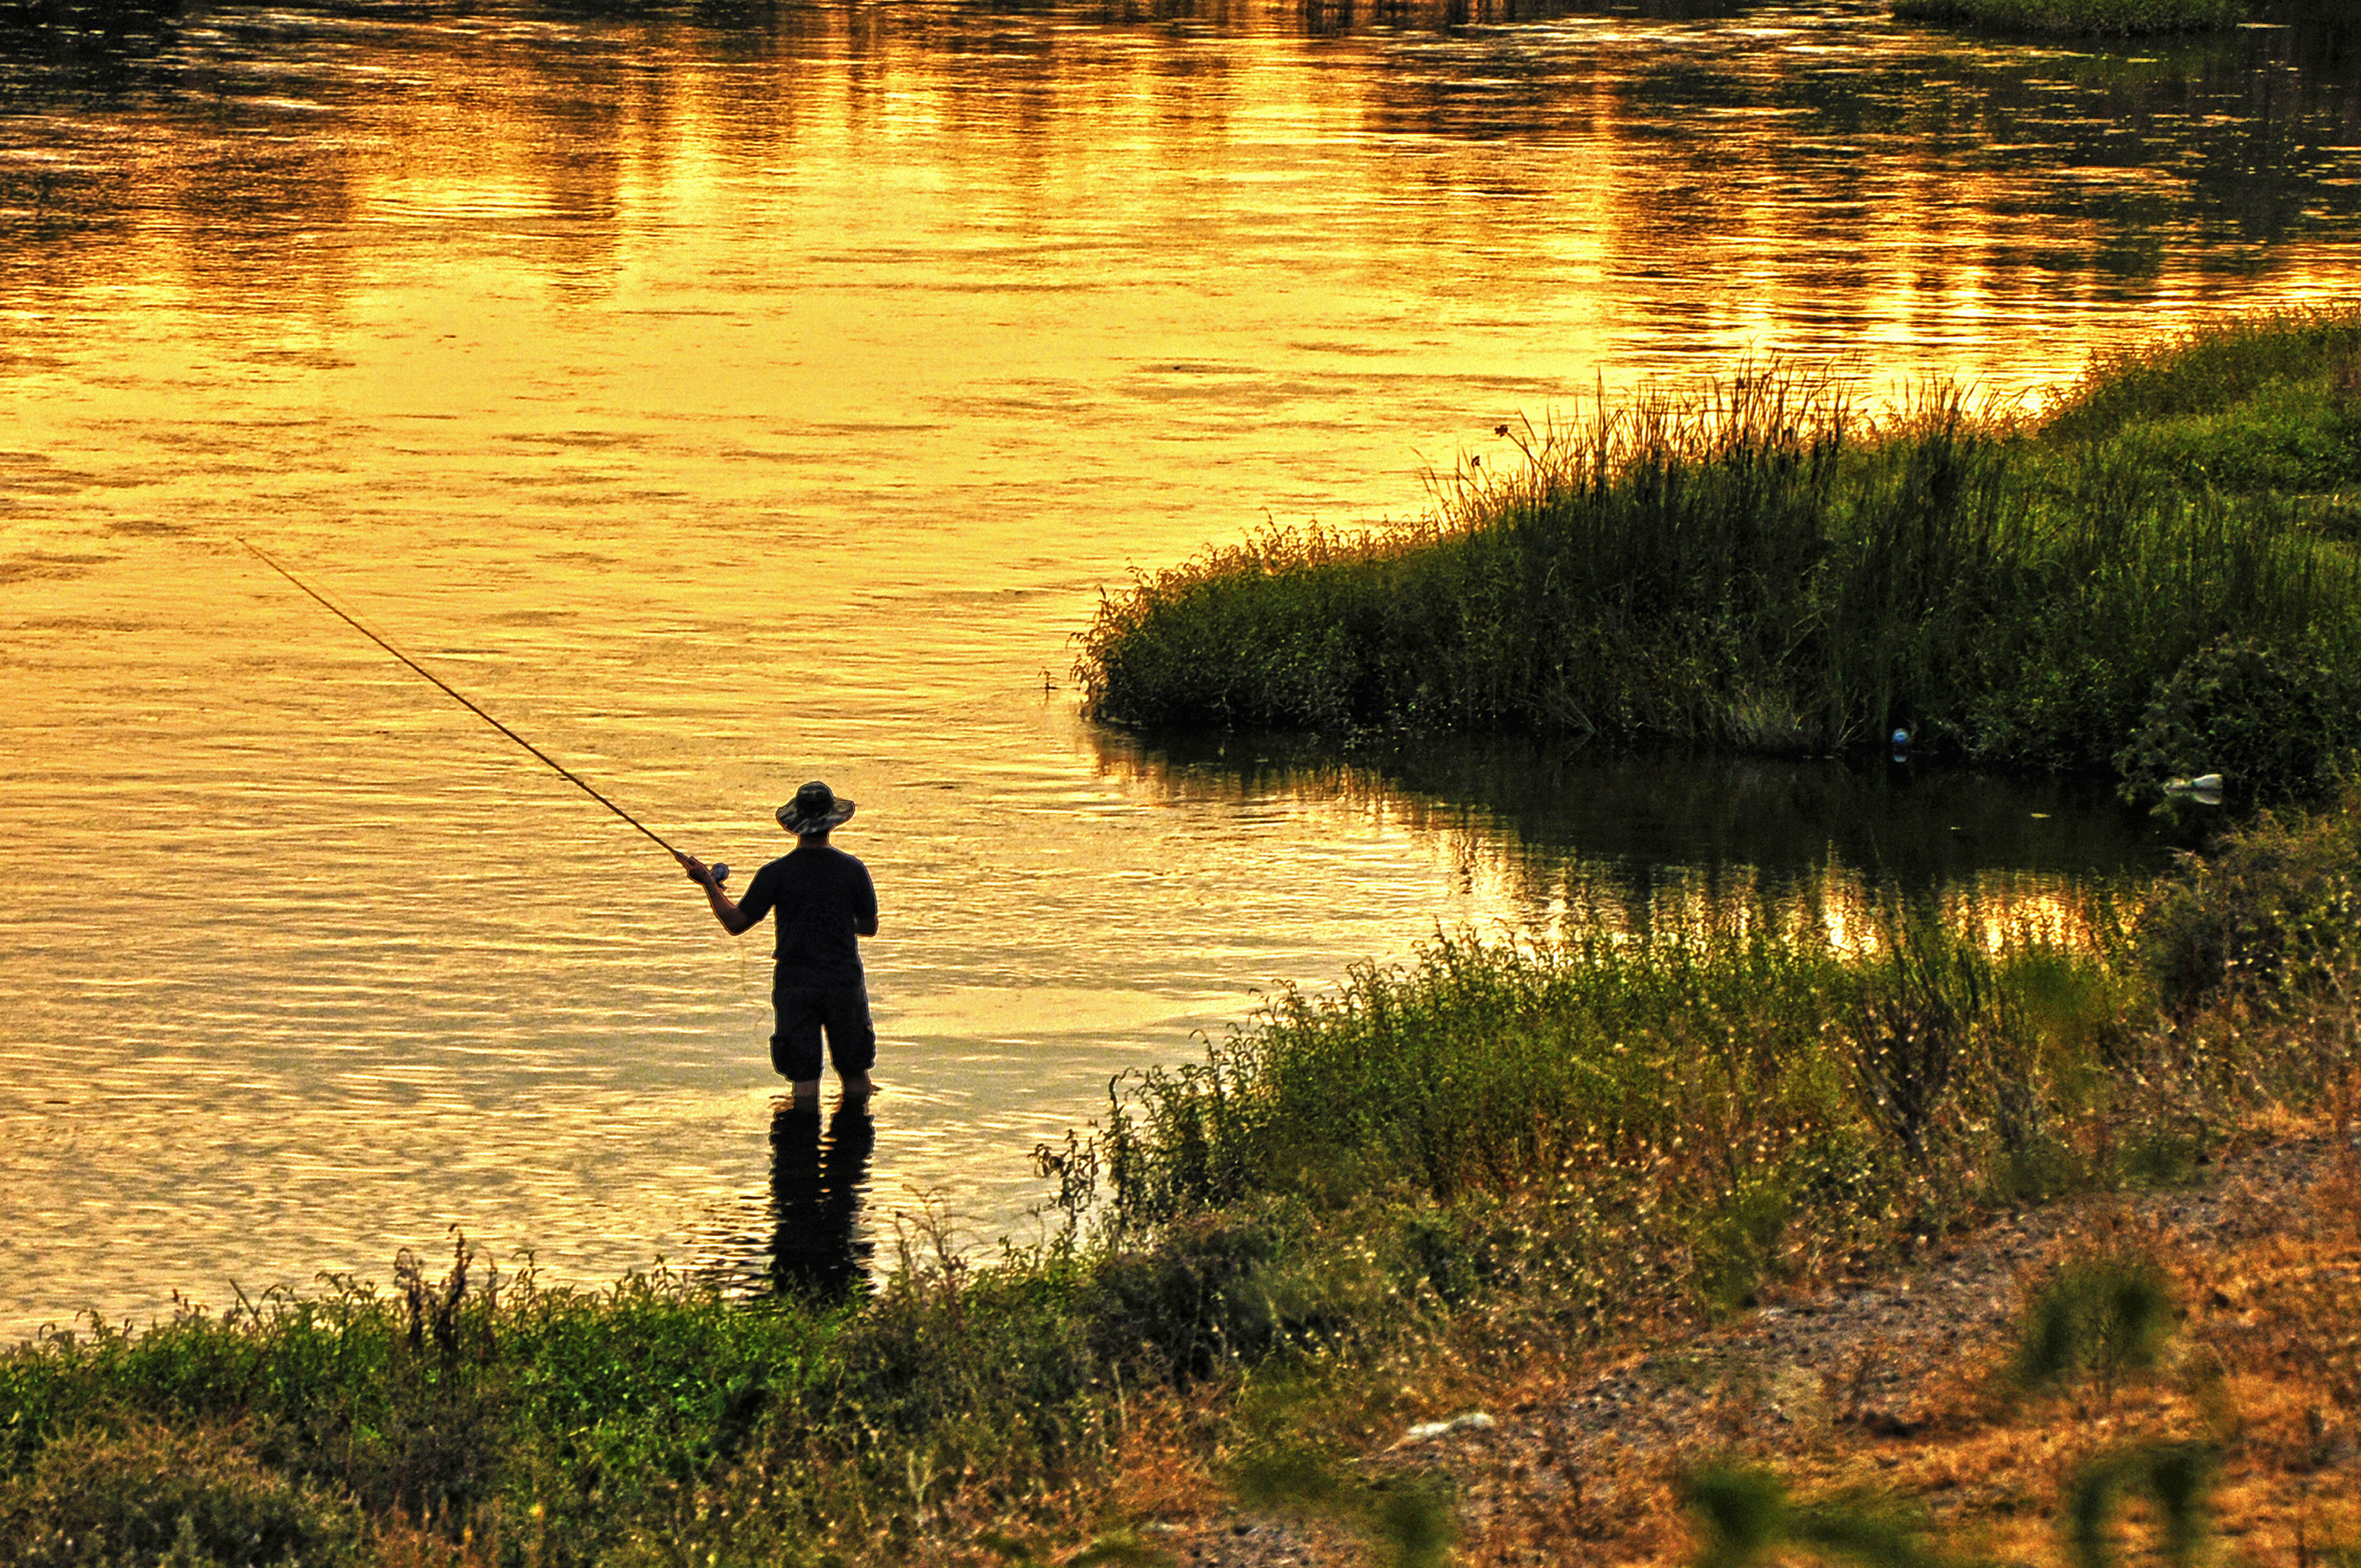 Fishing on the St  Croix River   USA Today